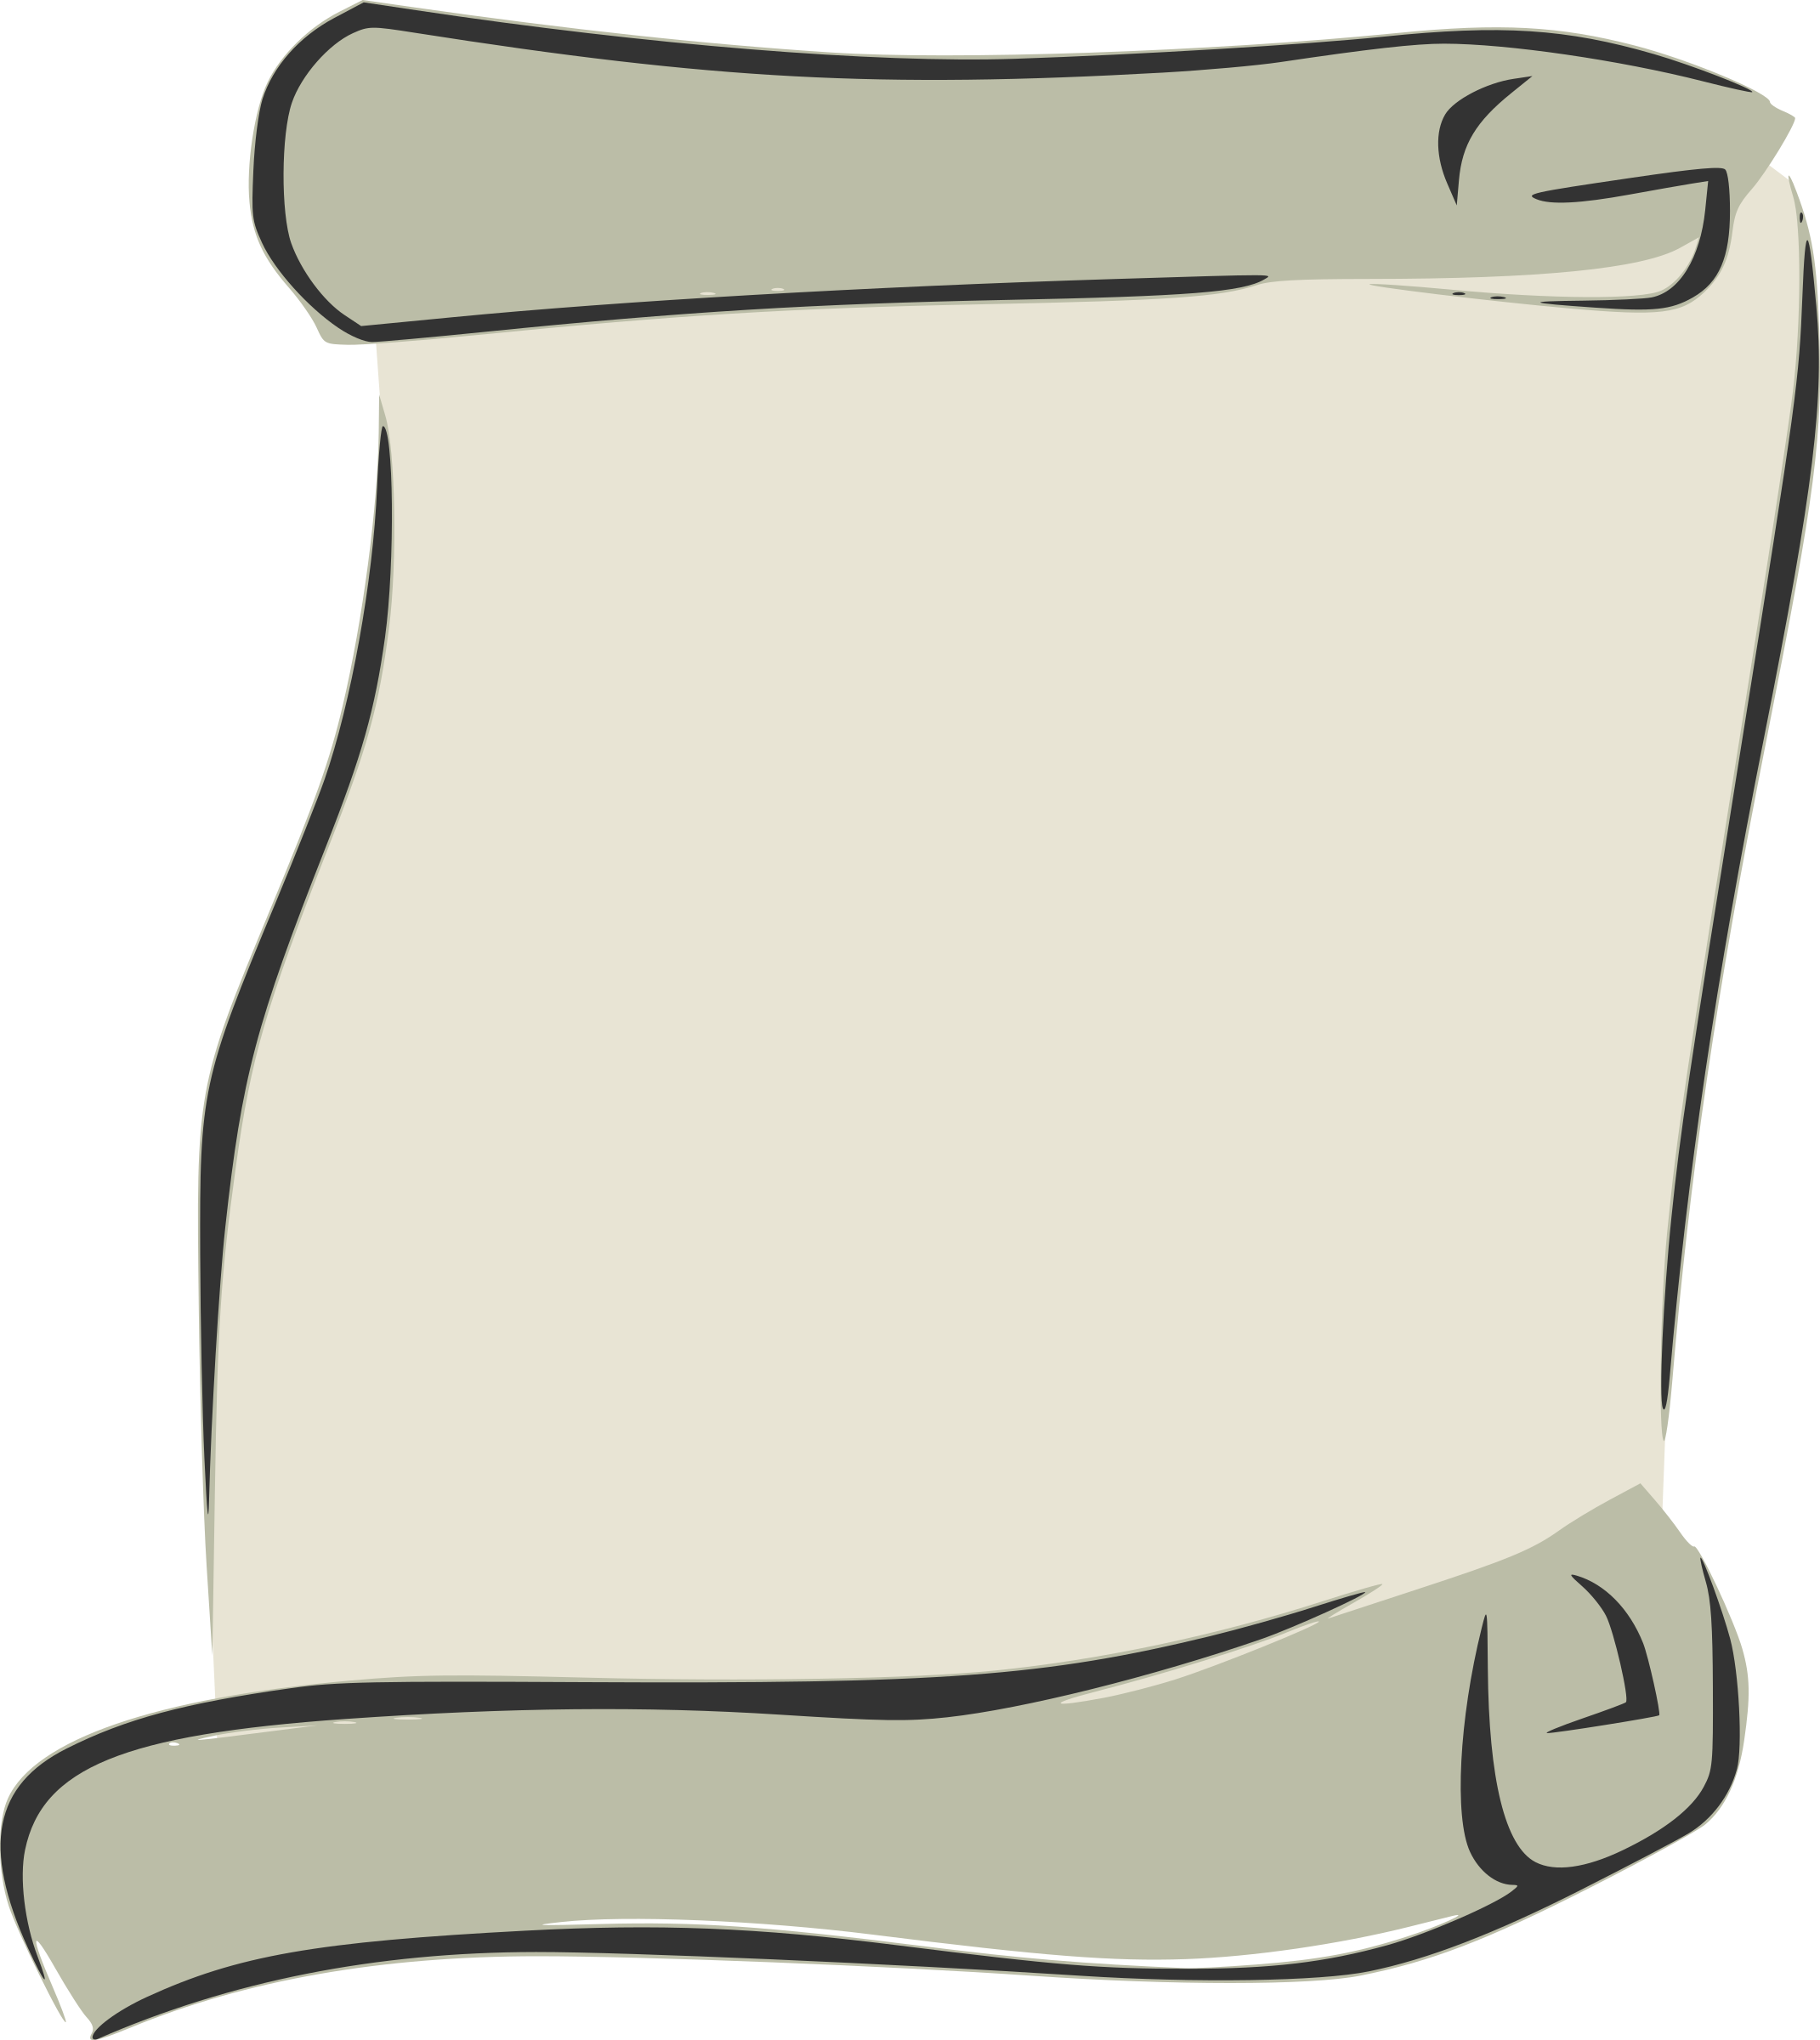 Parchment big image png. Scroll clipart background